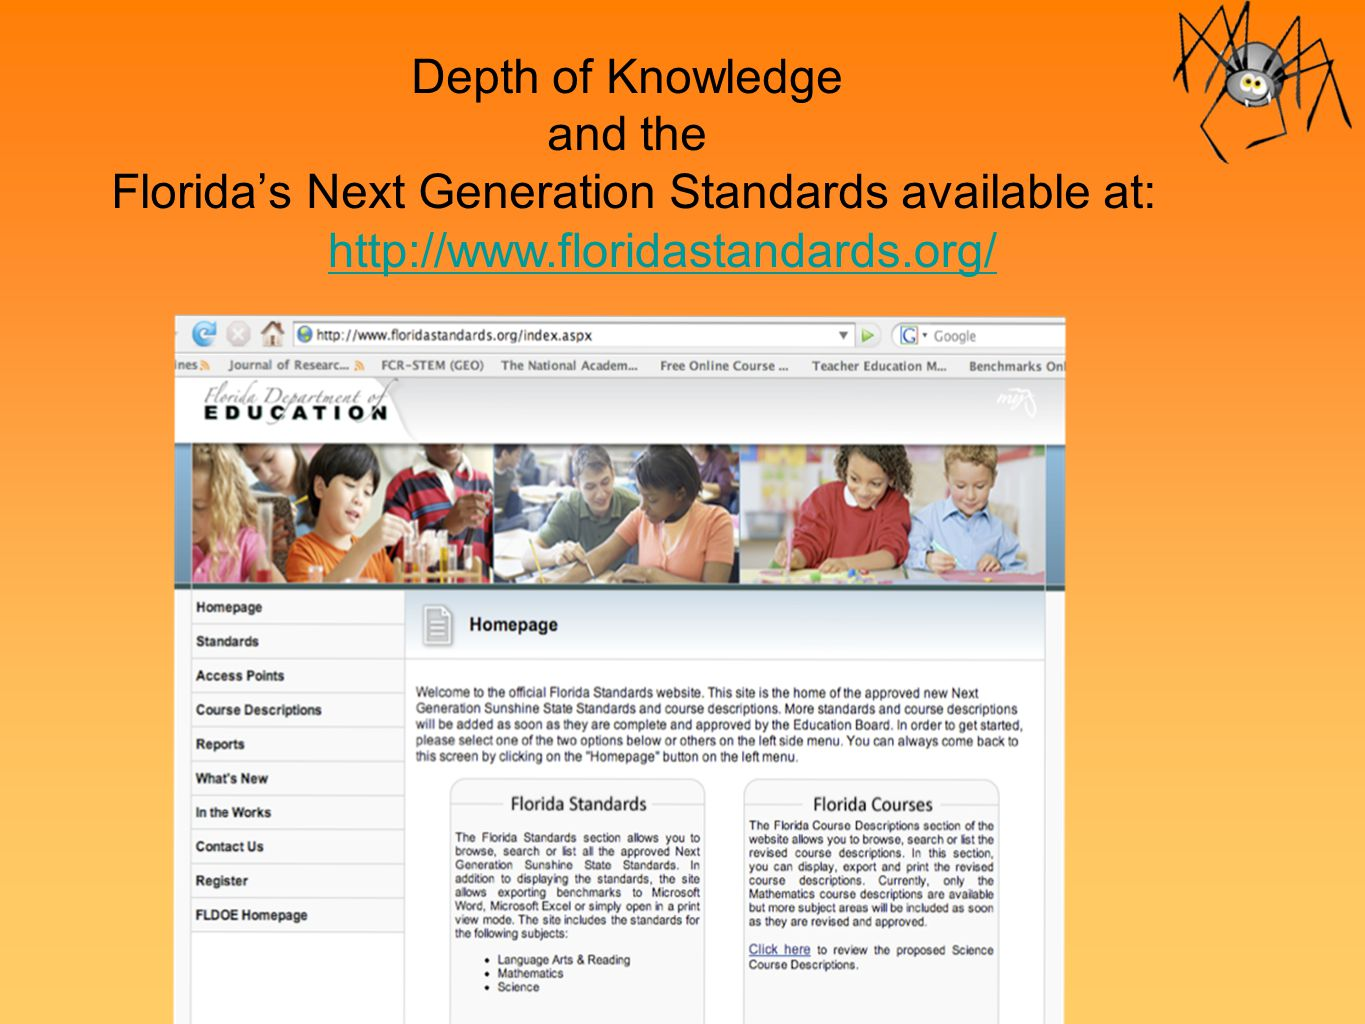 Depth of Knowledge and the Florida's Next Generation Standards available at: http://www.floridastandards.org/